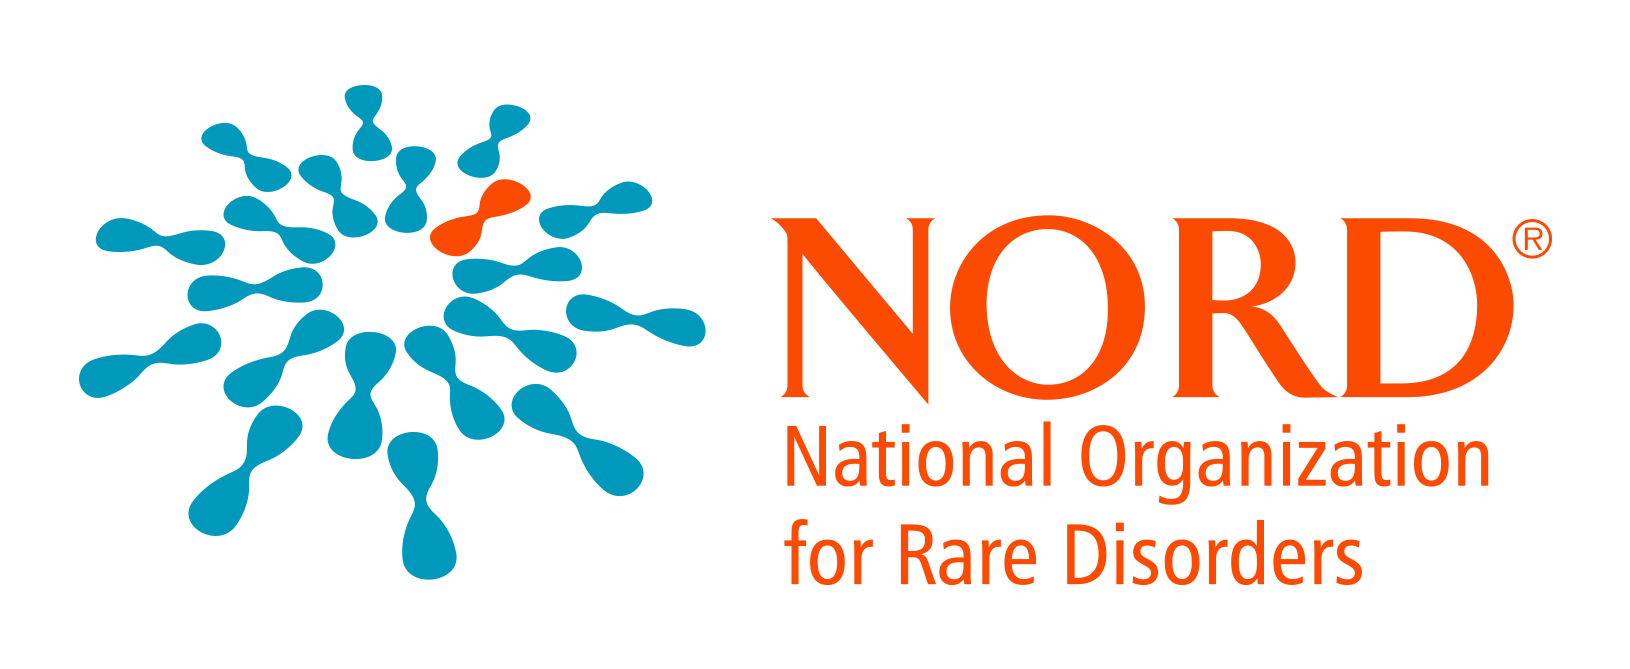 NORD is a patient advocacy organization committed to helping patients with rare diseases